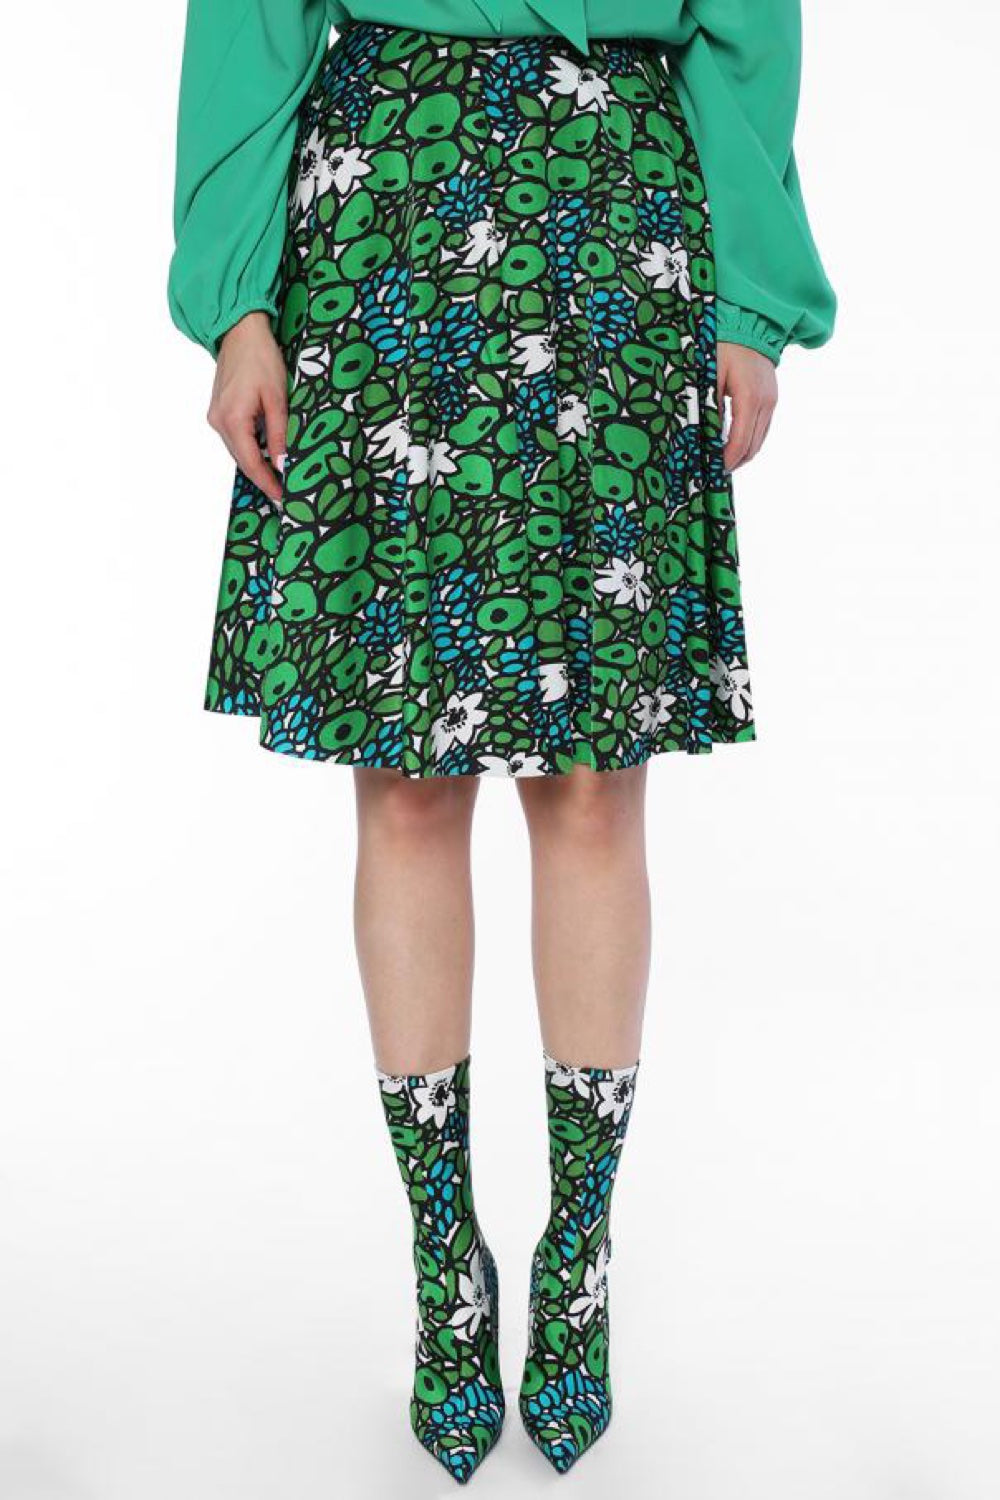 Patterned Flared Skirt - The Bobby Boga